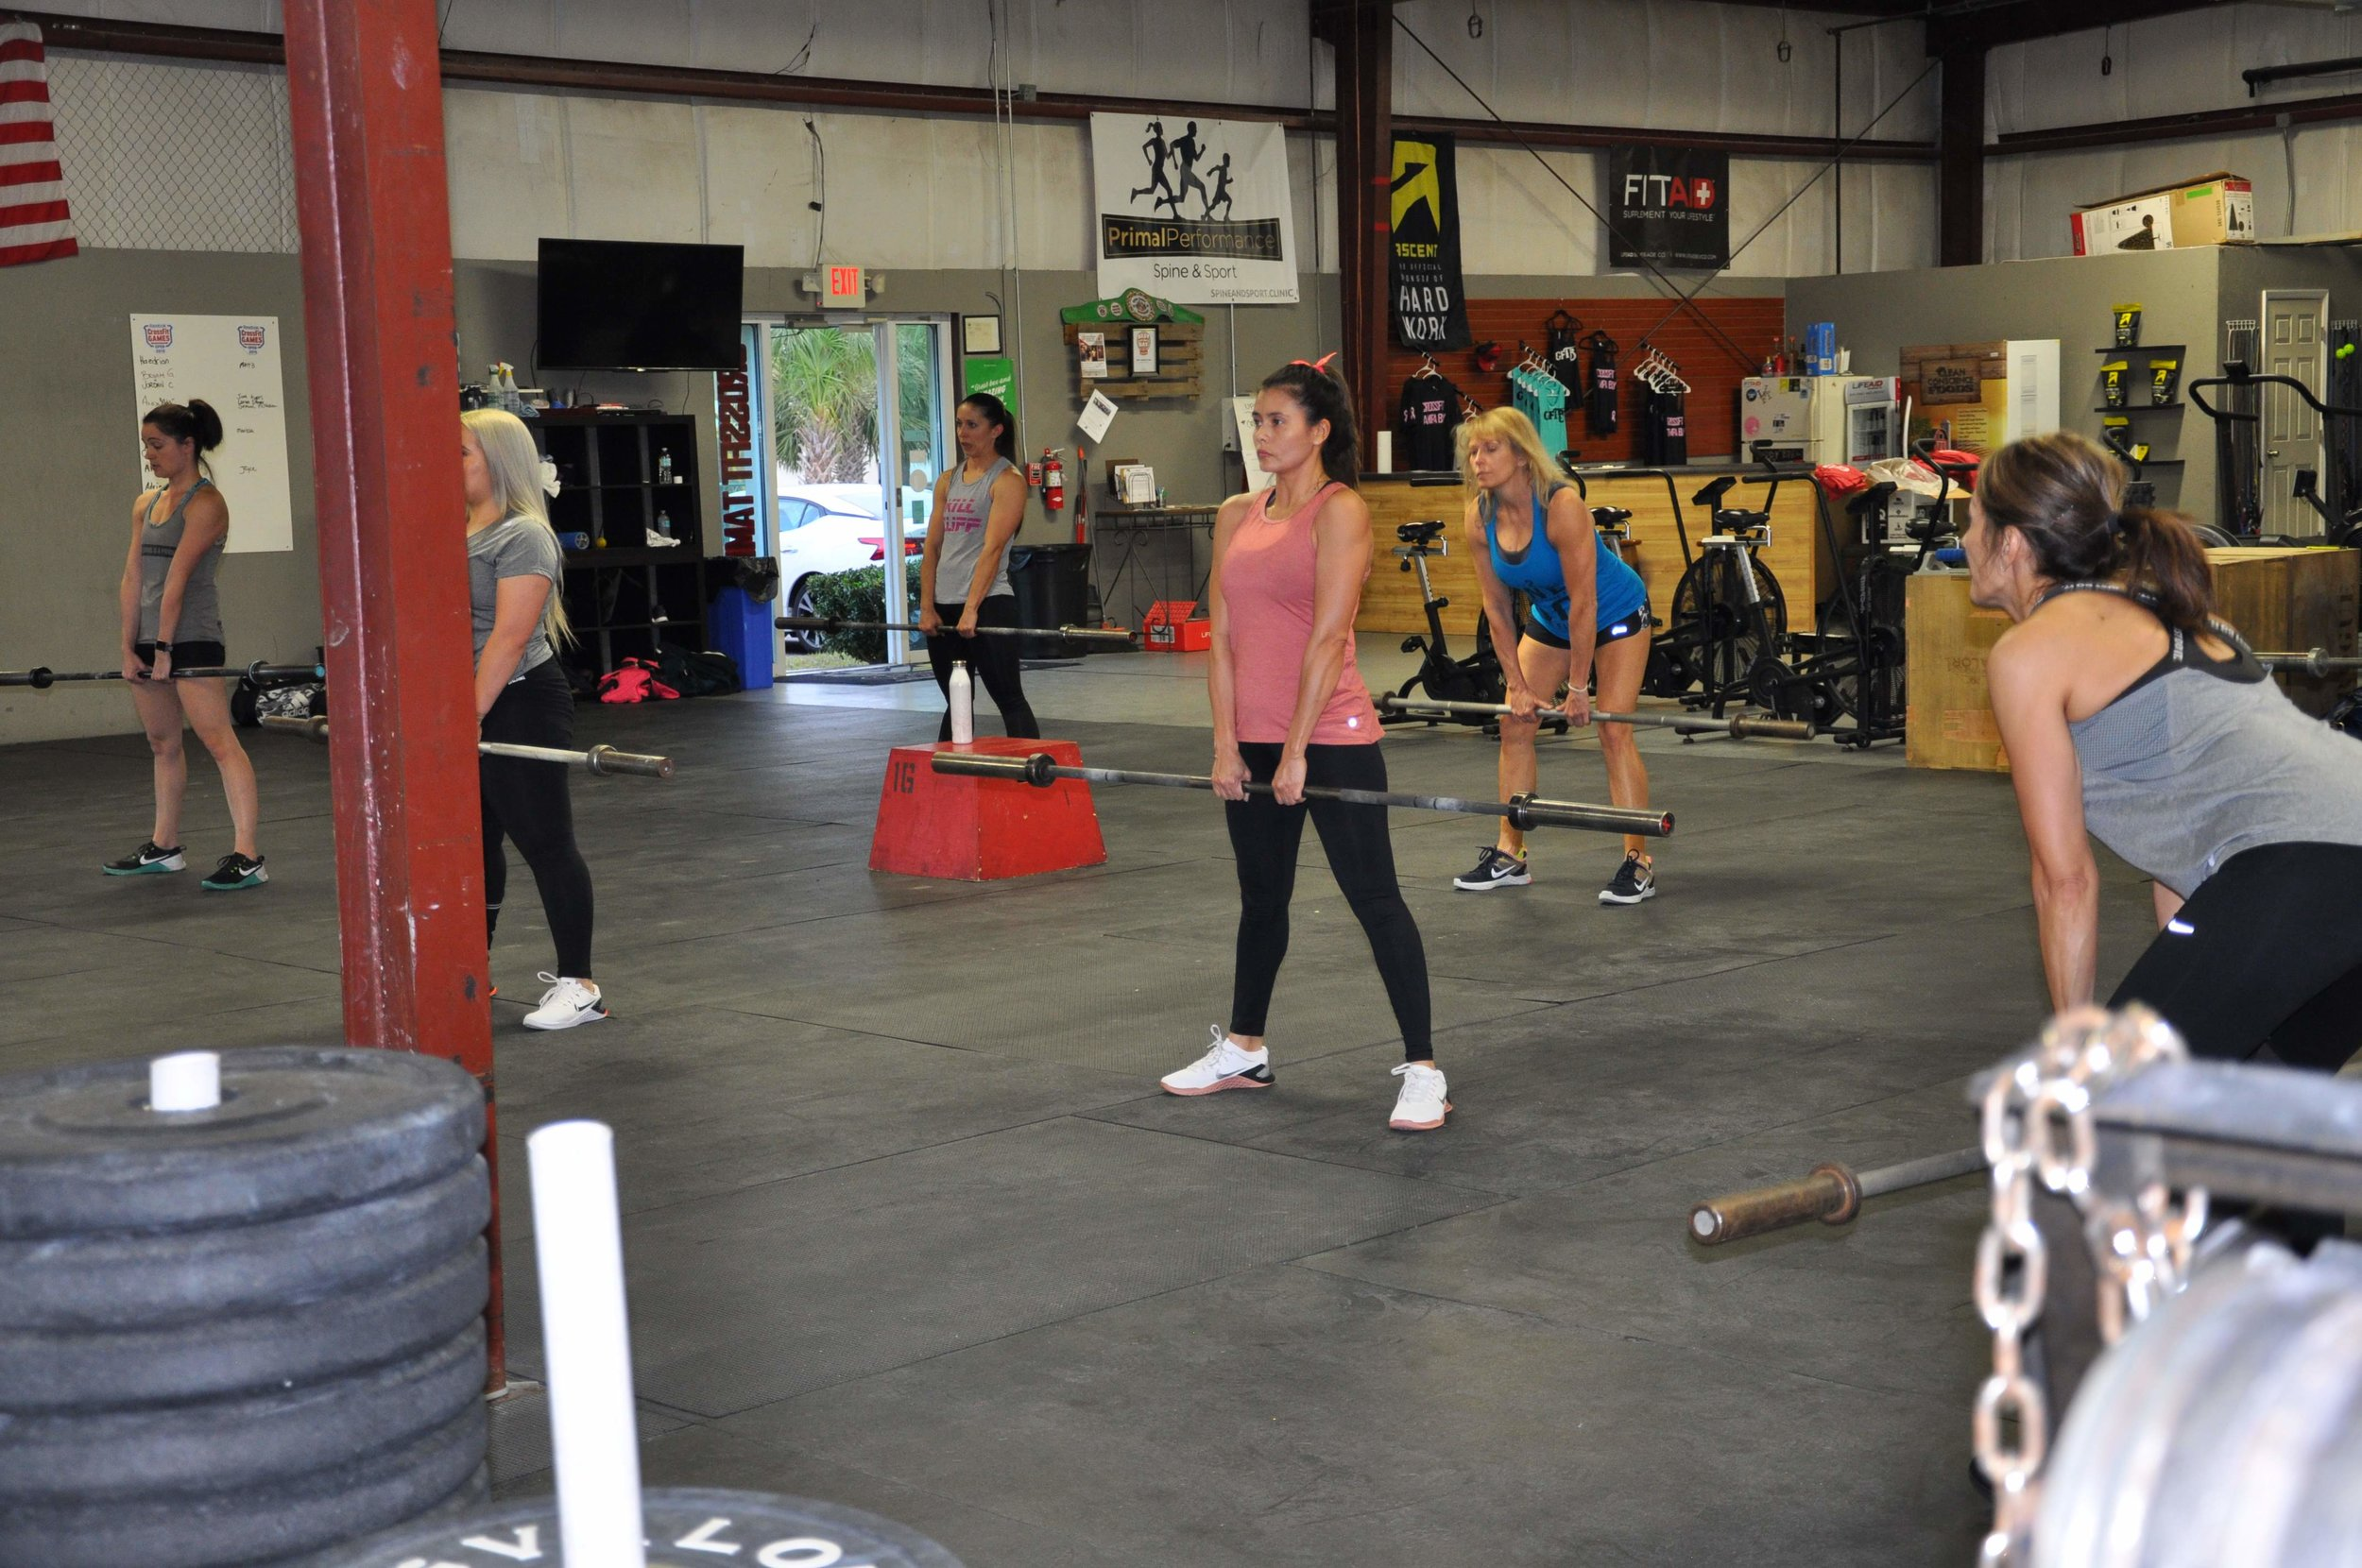 HOME TO ATHLETES & BEGINNERS. - Crossfit pro, or just getting started. You'll fit right in.